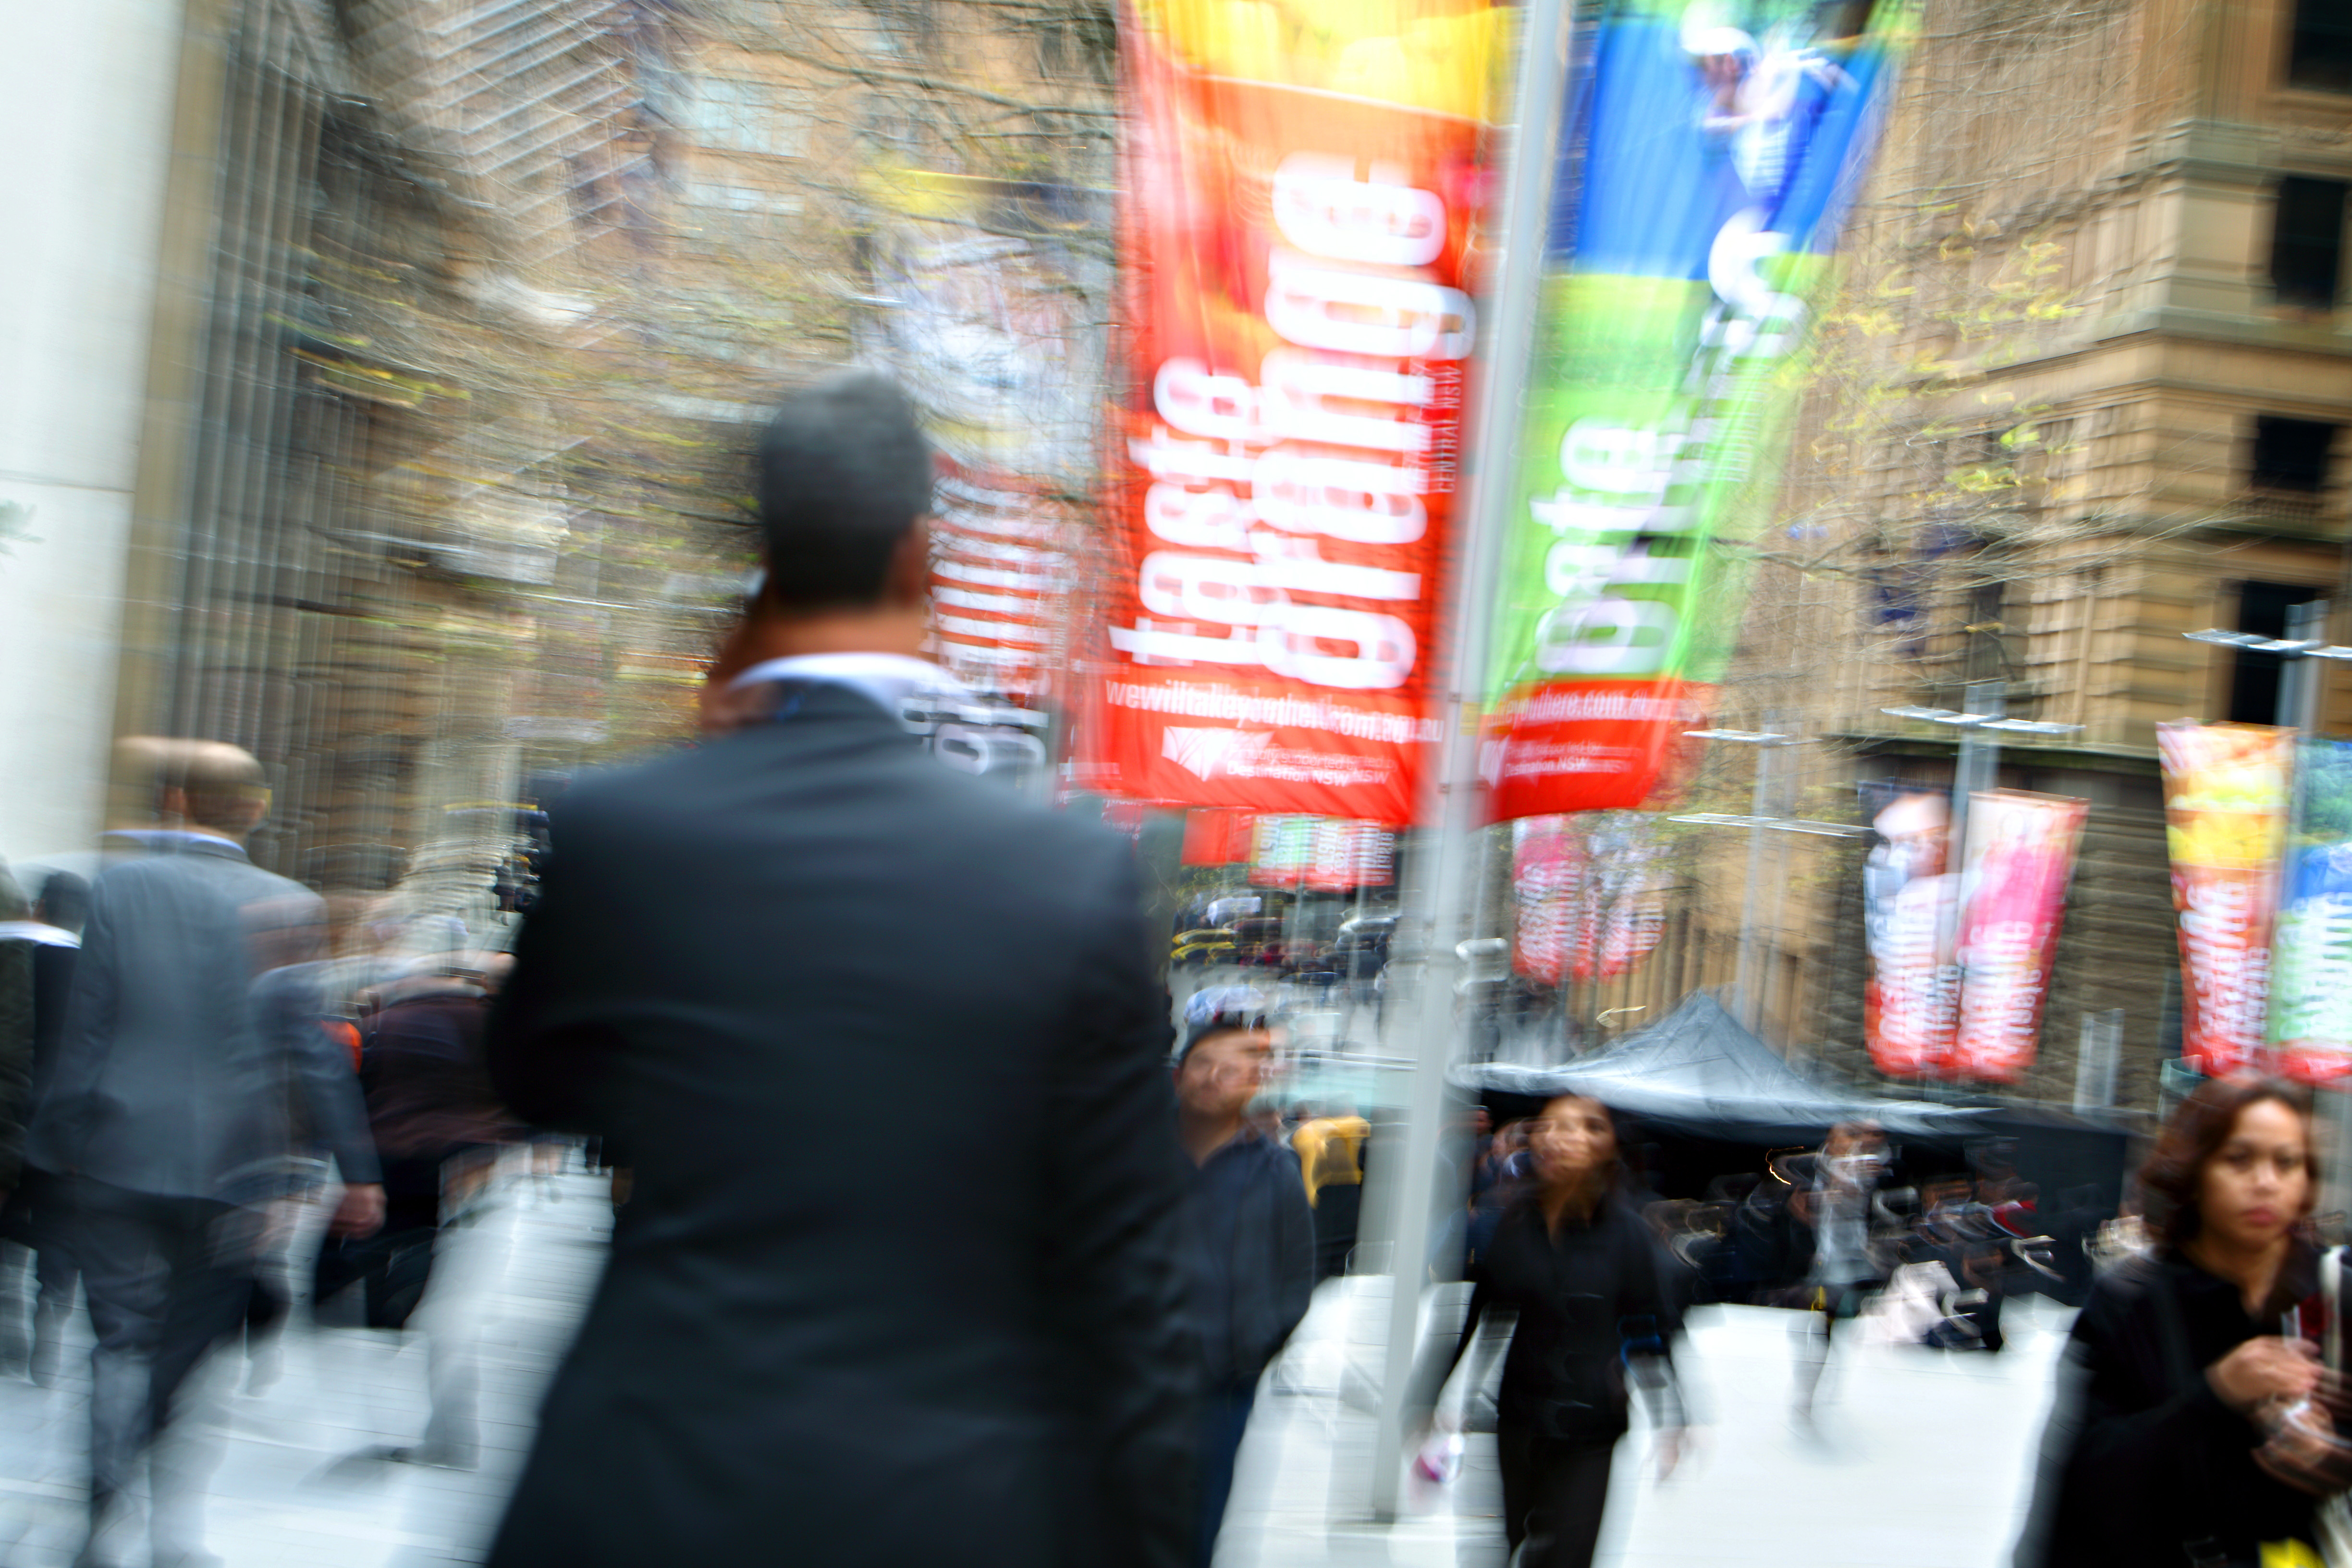 A busy pedestrian street, blurred by motion.